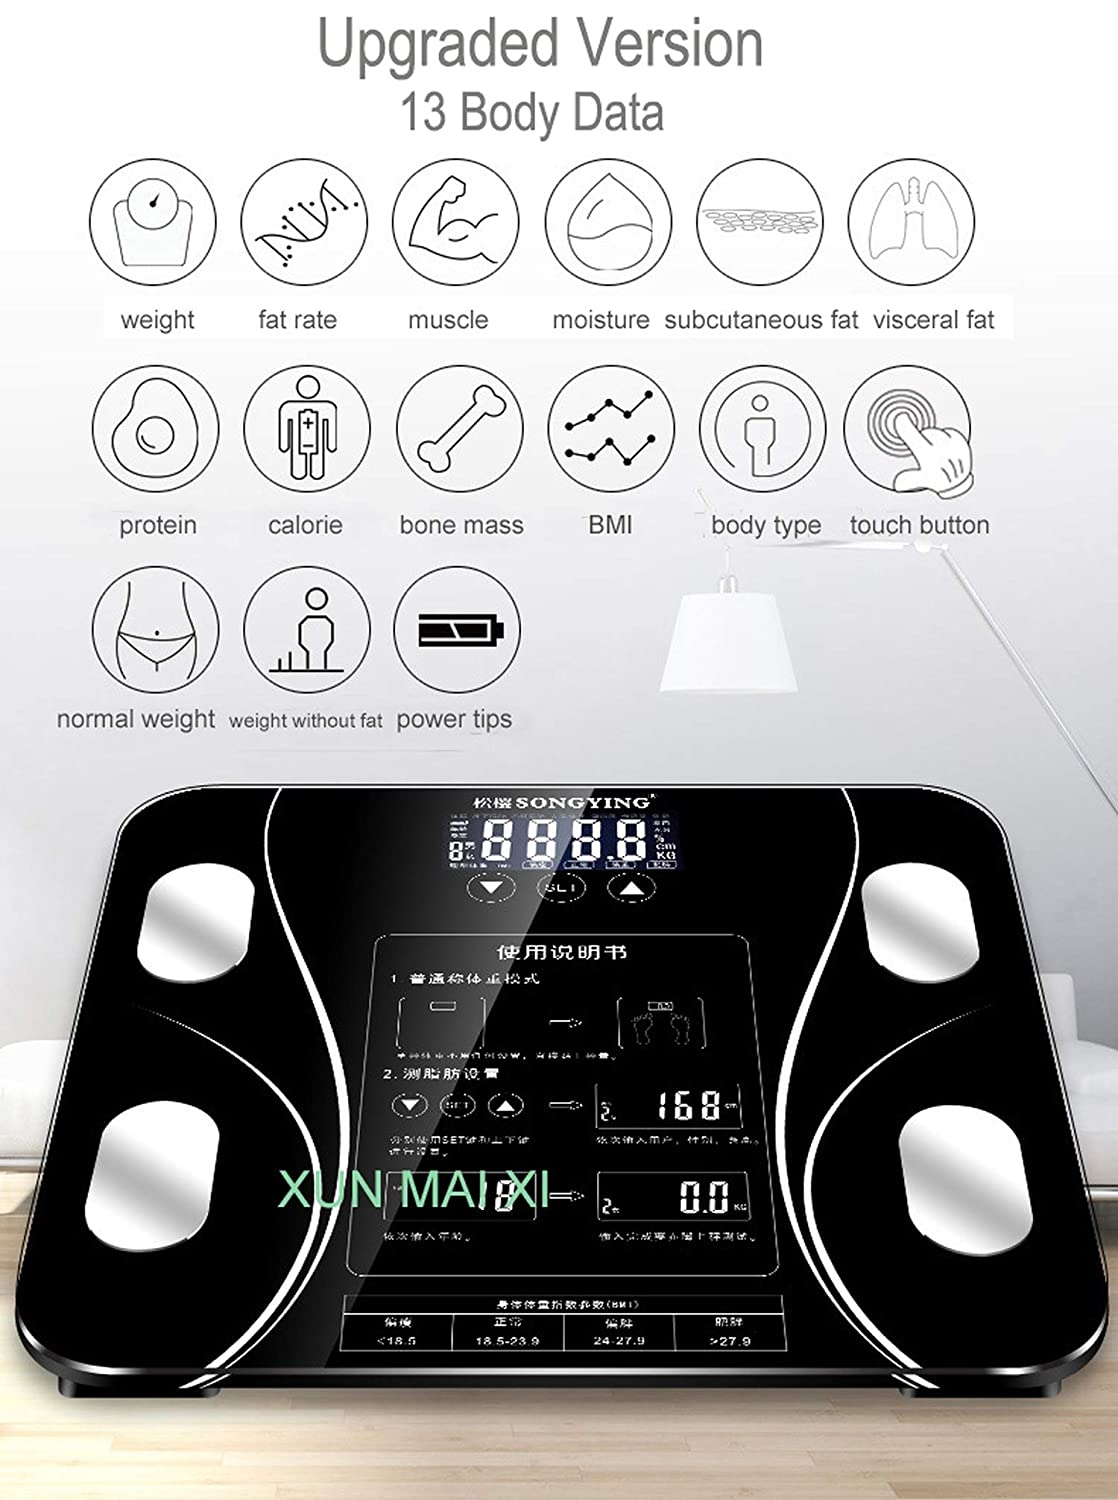 ... Body Index Electronic Smart Weighing Scales Bathroom Body Fat bmi Scale Digital Human Weight Mi Scales Floor LCD Display,Black 2: Health & Personal Care